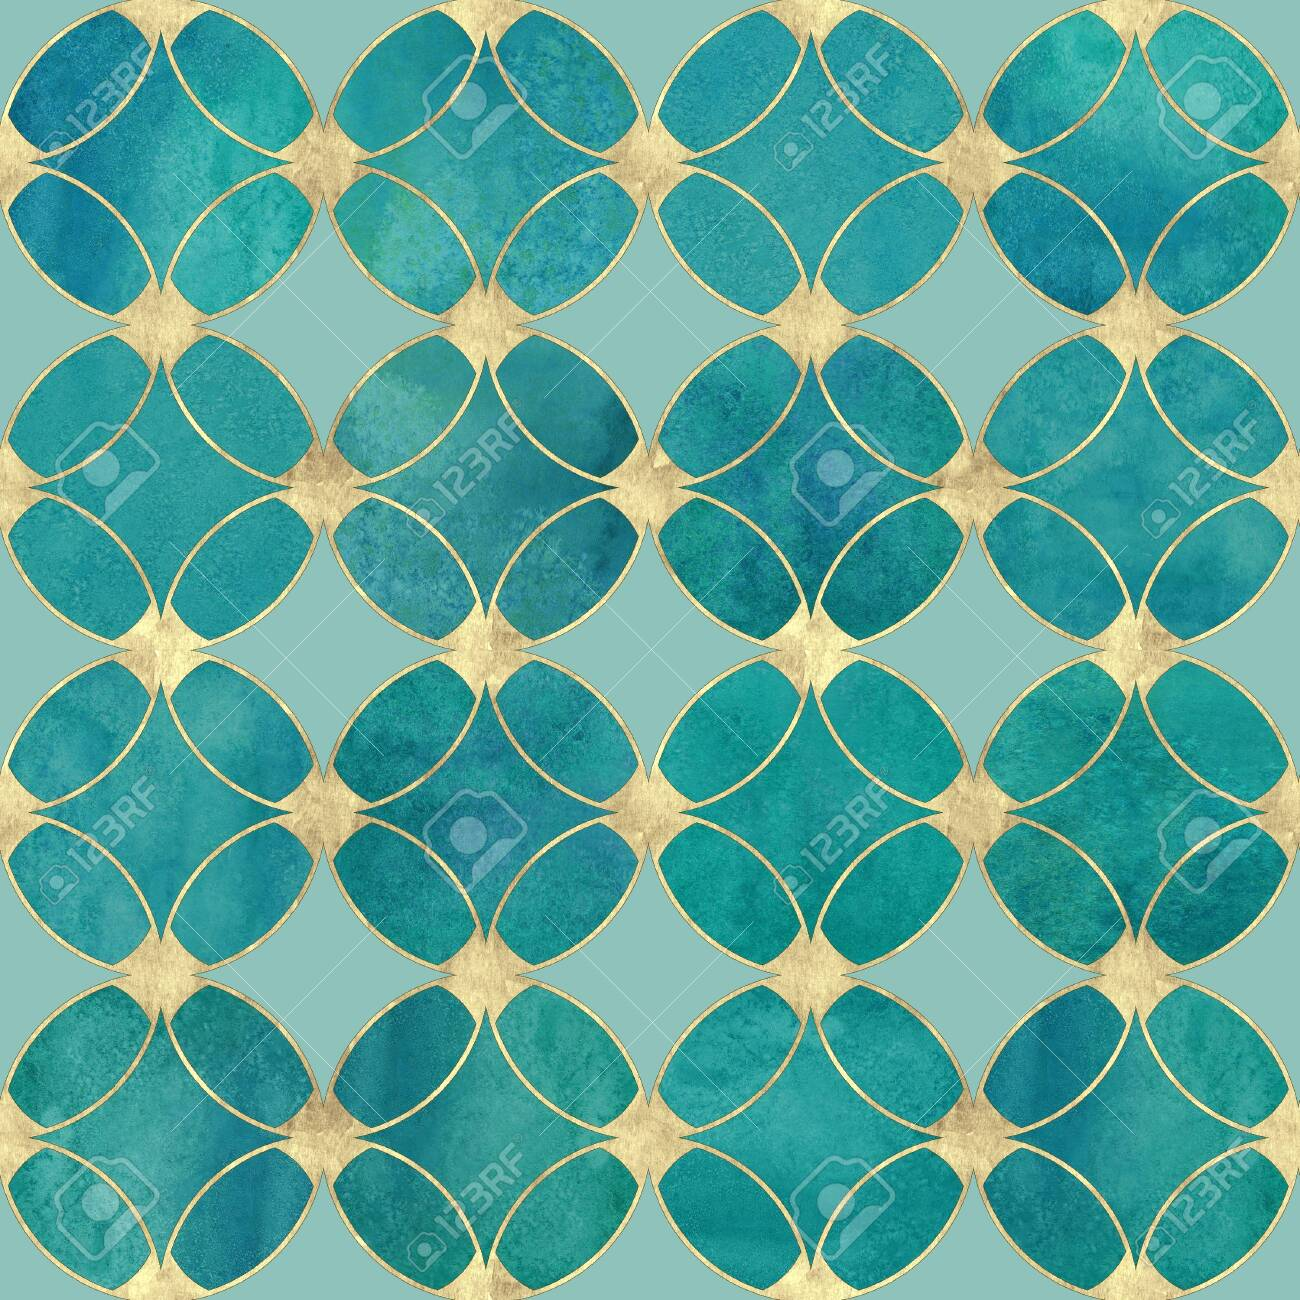 Seamless Watercolour Teal Turquoise Gold Glitter Abstract Texture Stock Photo Picture And Royalty Free Image Image 116851498